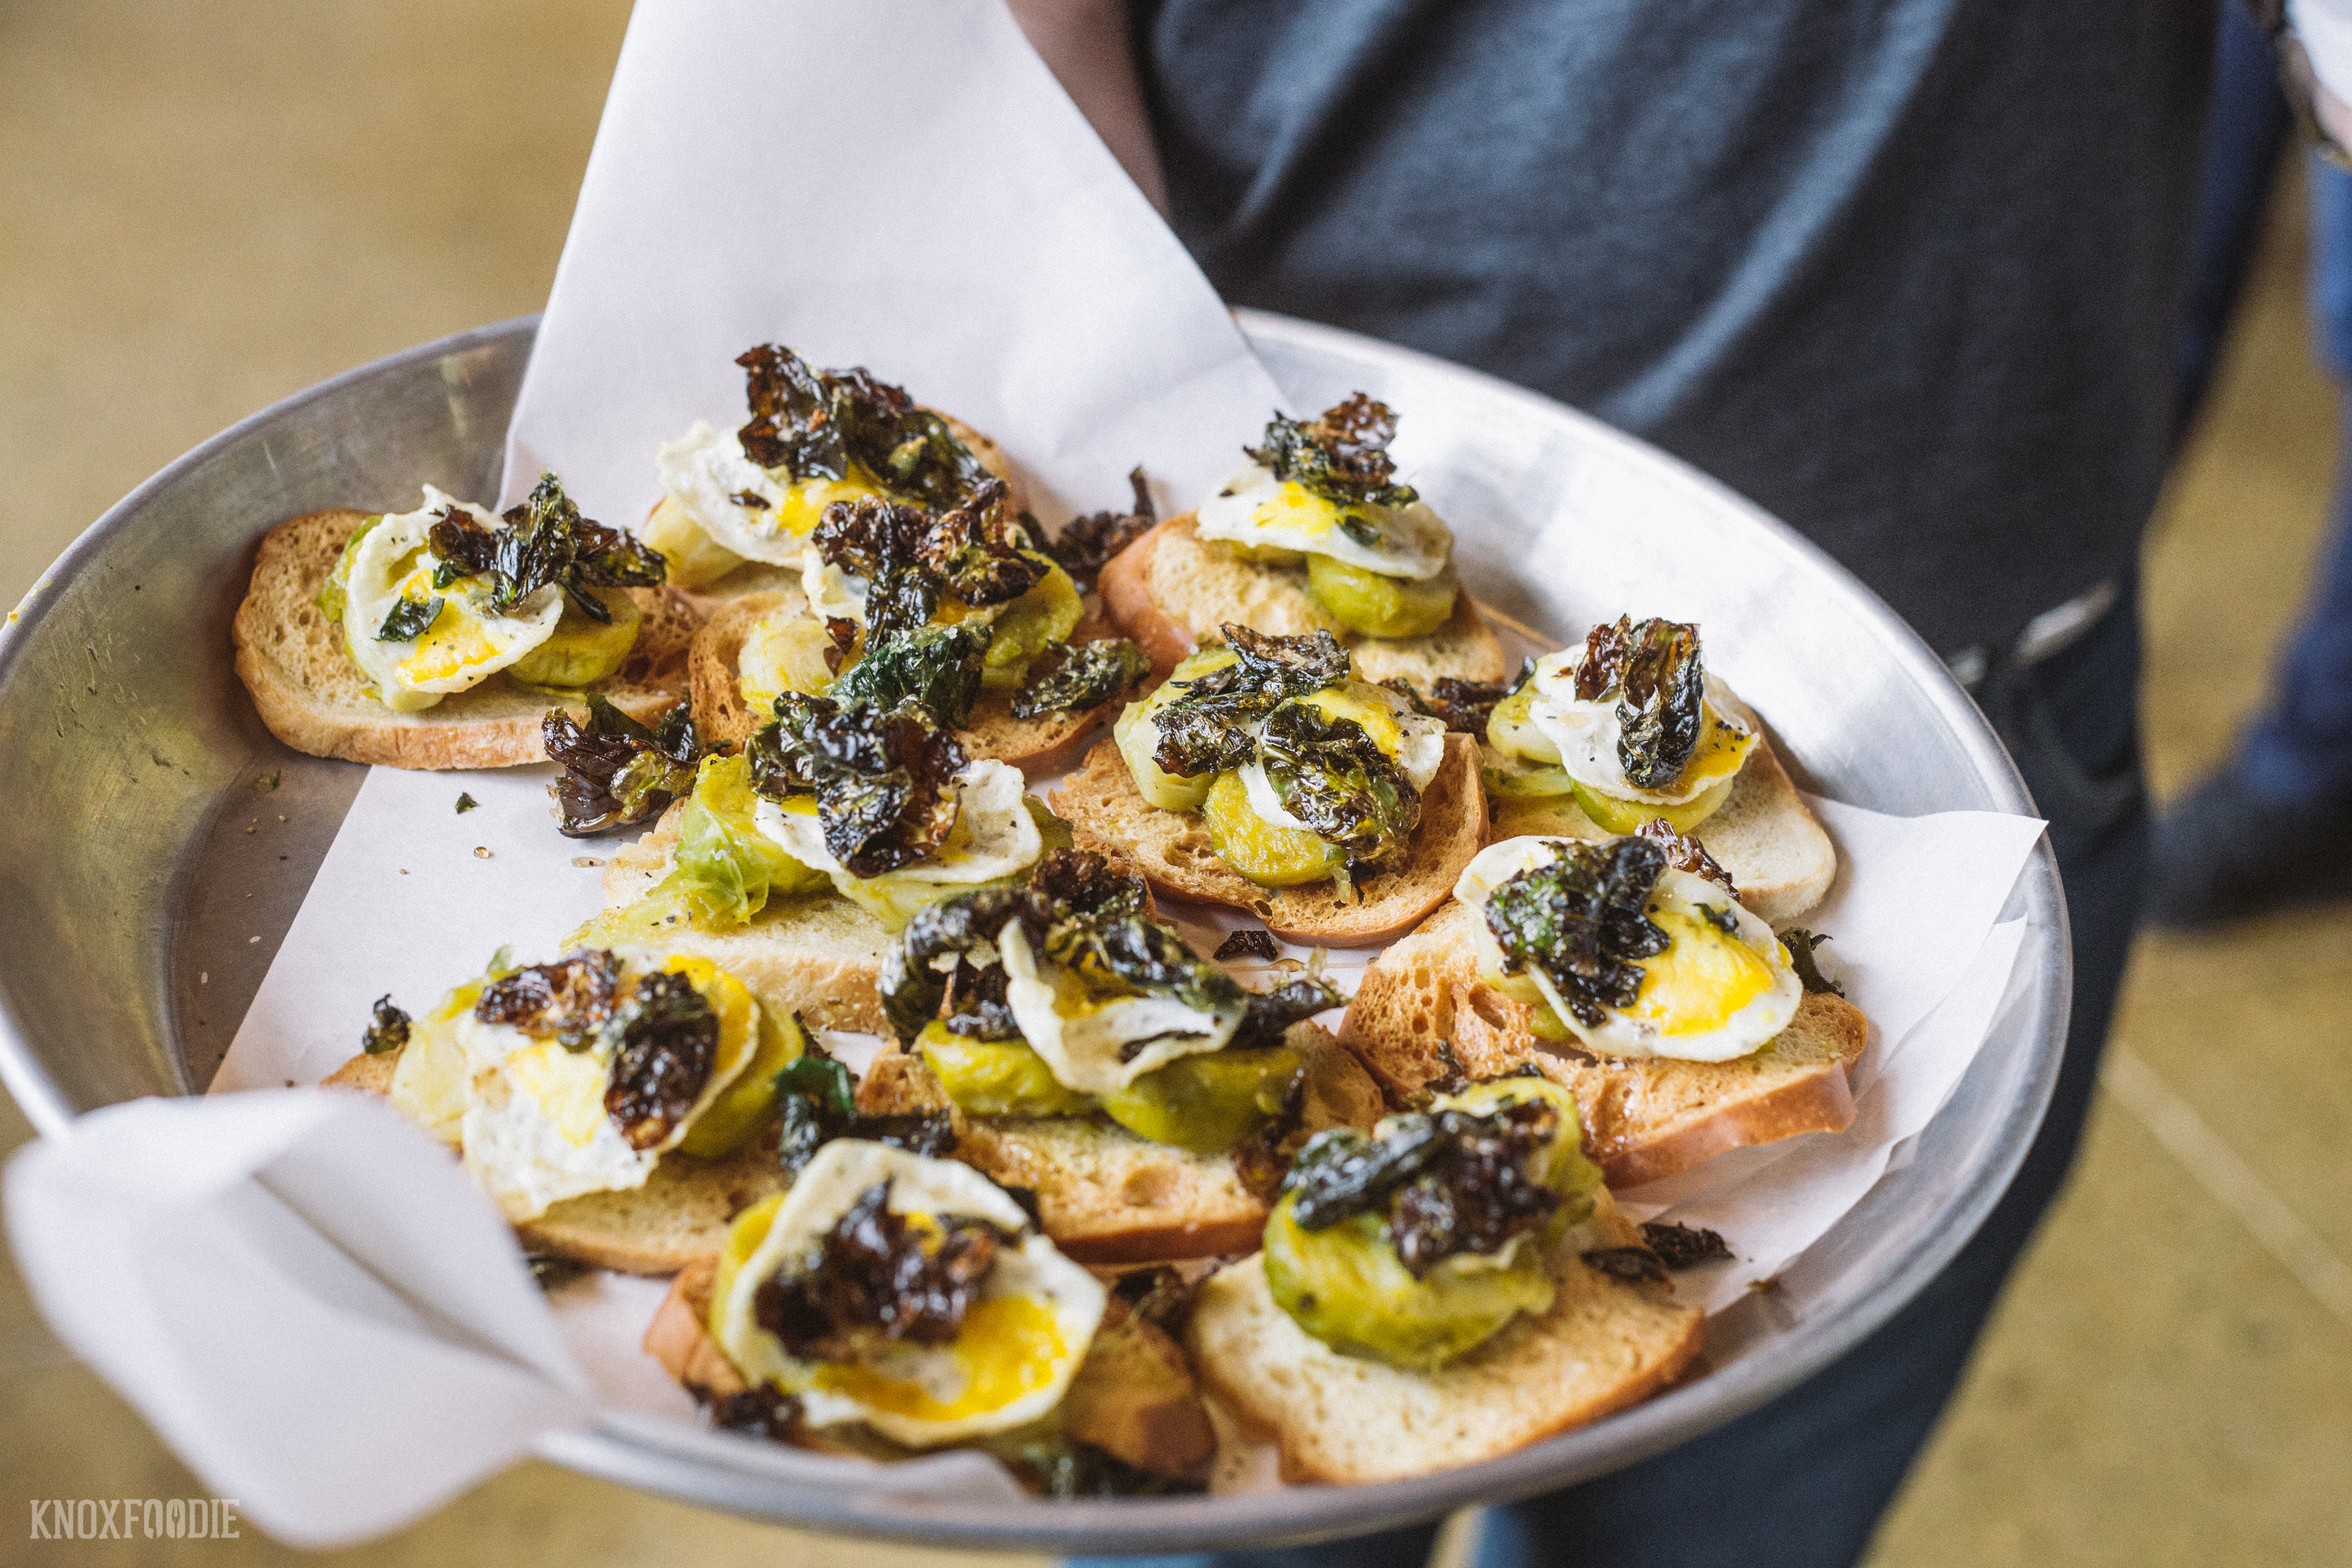 Crostini with roasted brussels sprouts, fried quail egg and maple.